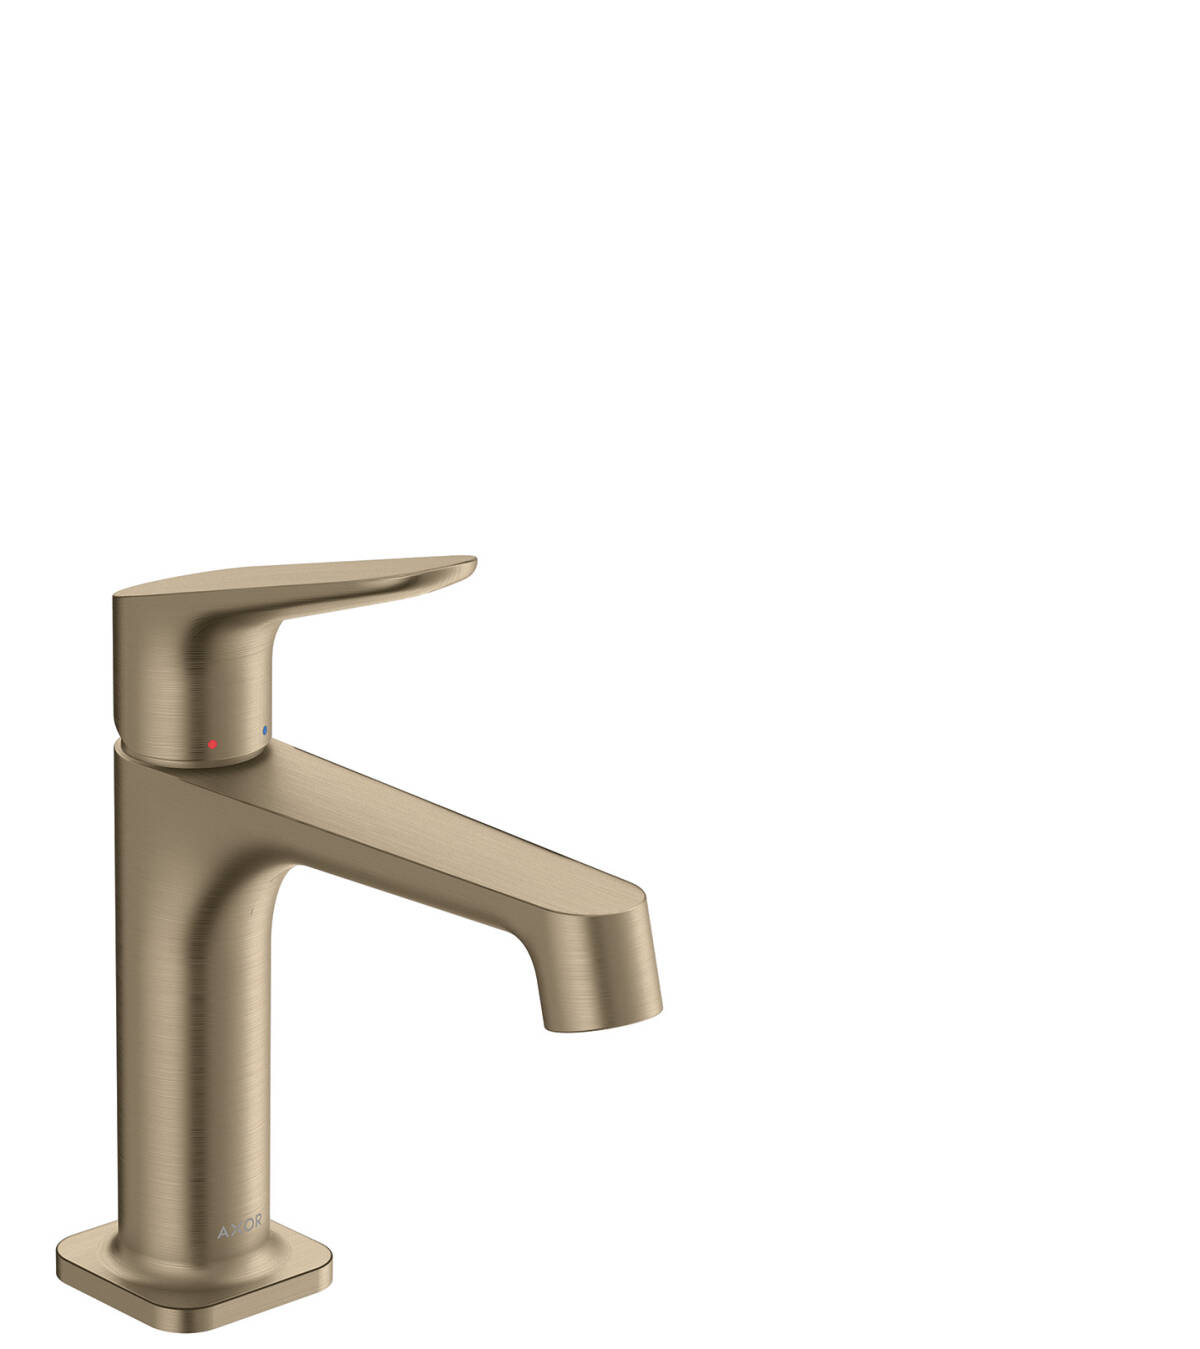 Single lever basin mixer 100 with waste set, Brushed Nickel, 34017820